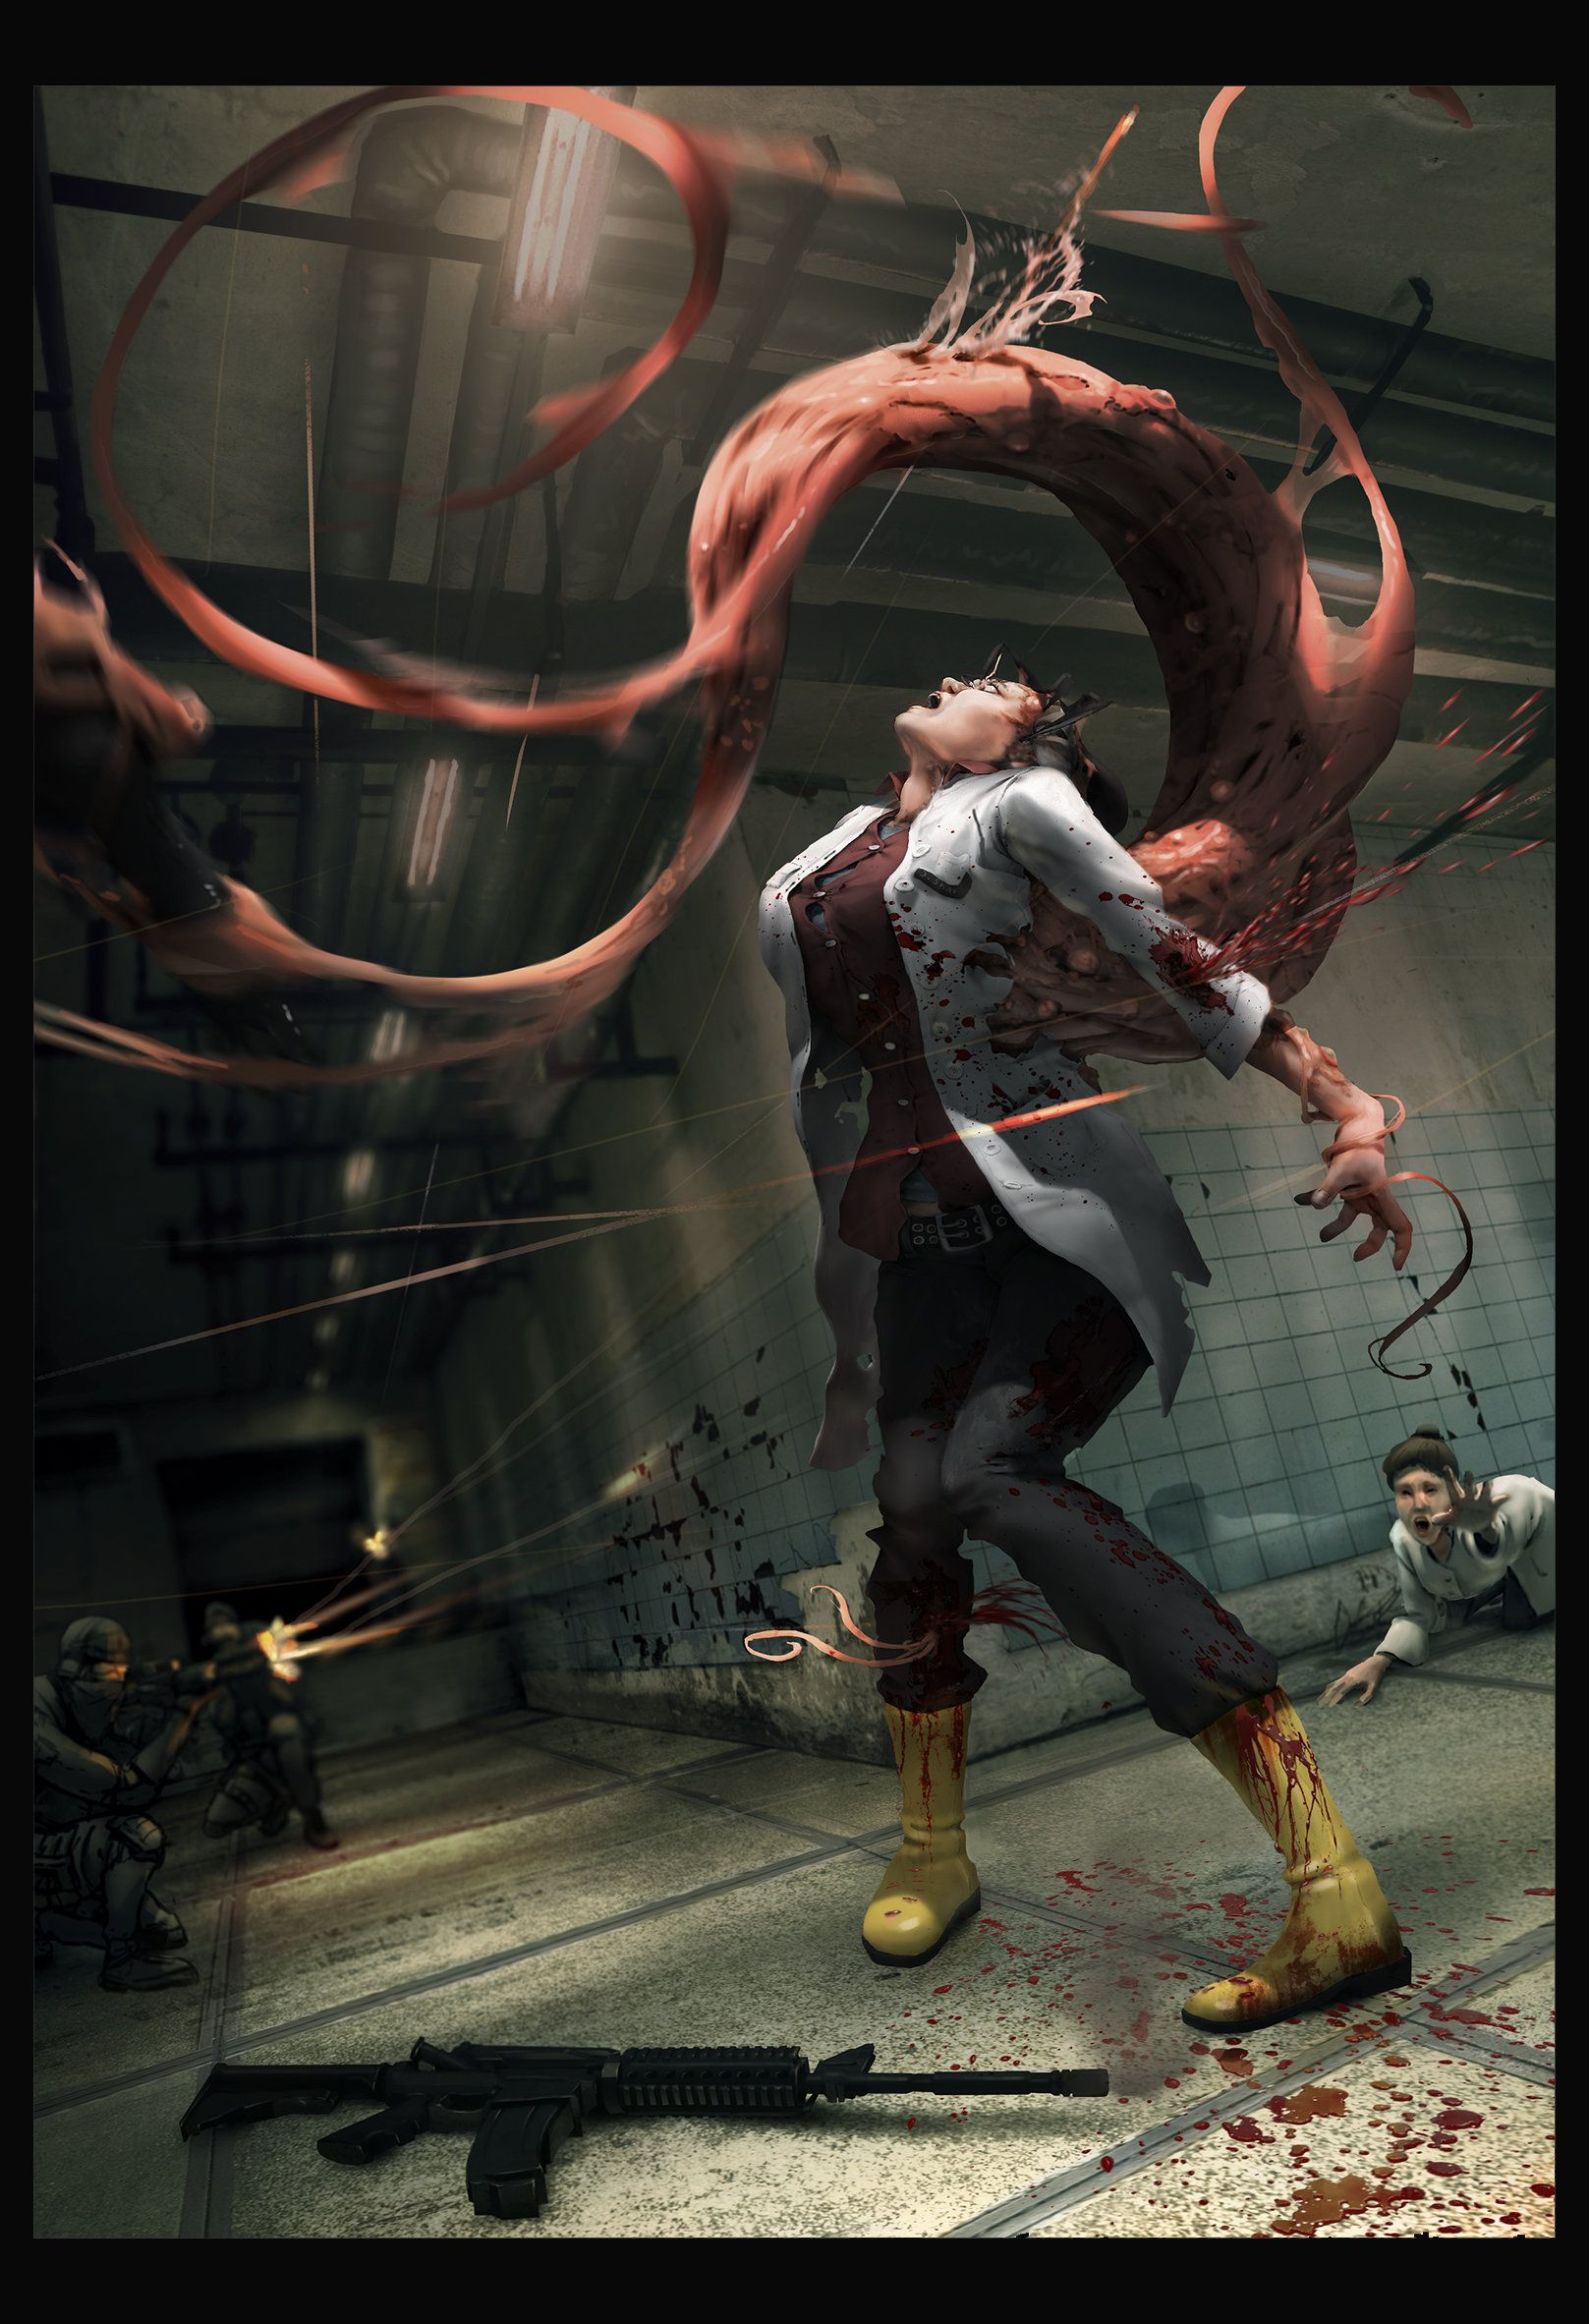 Pin by Game Master Toolbox on Aliens in 2018 | Pinterest ...